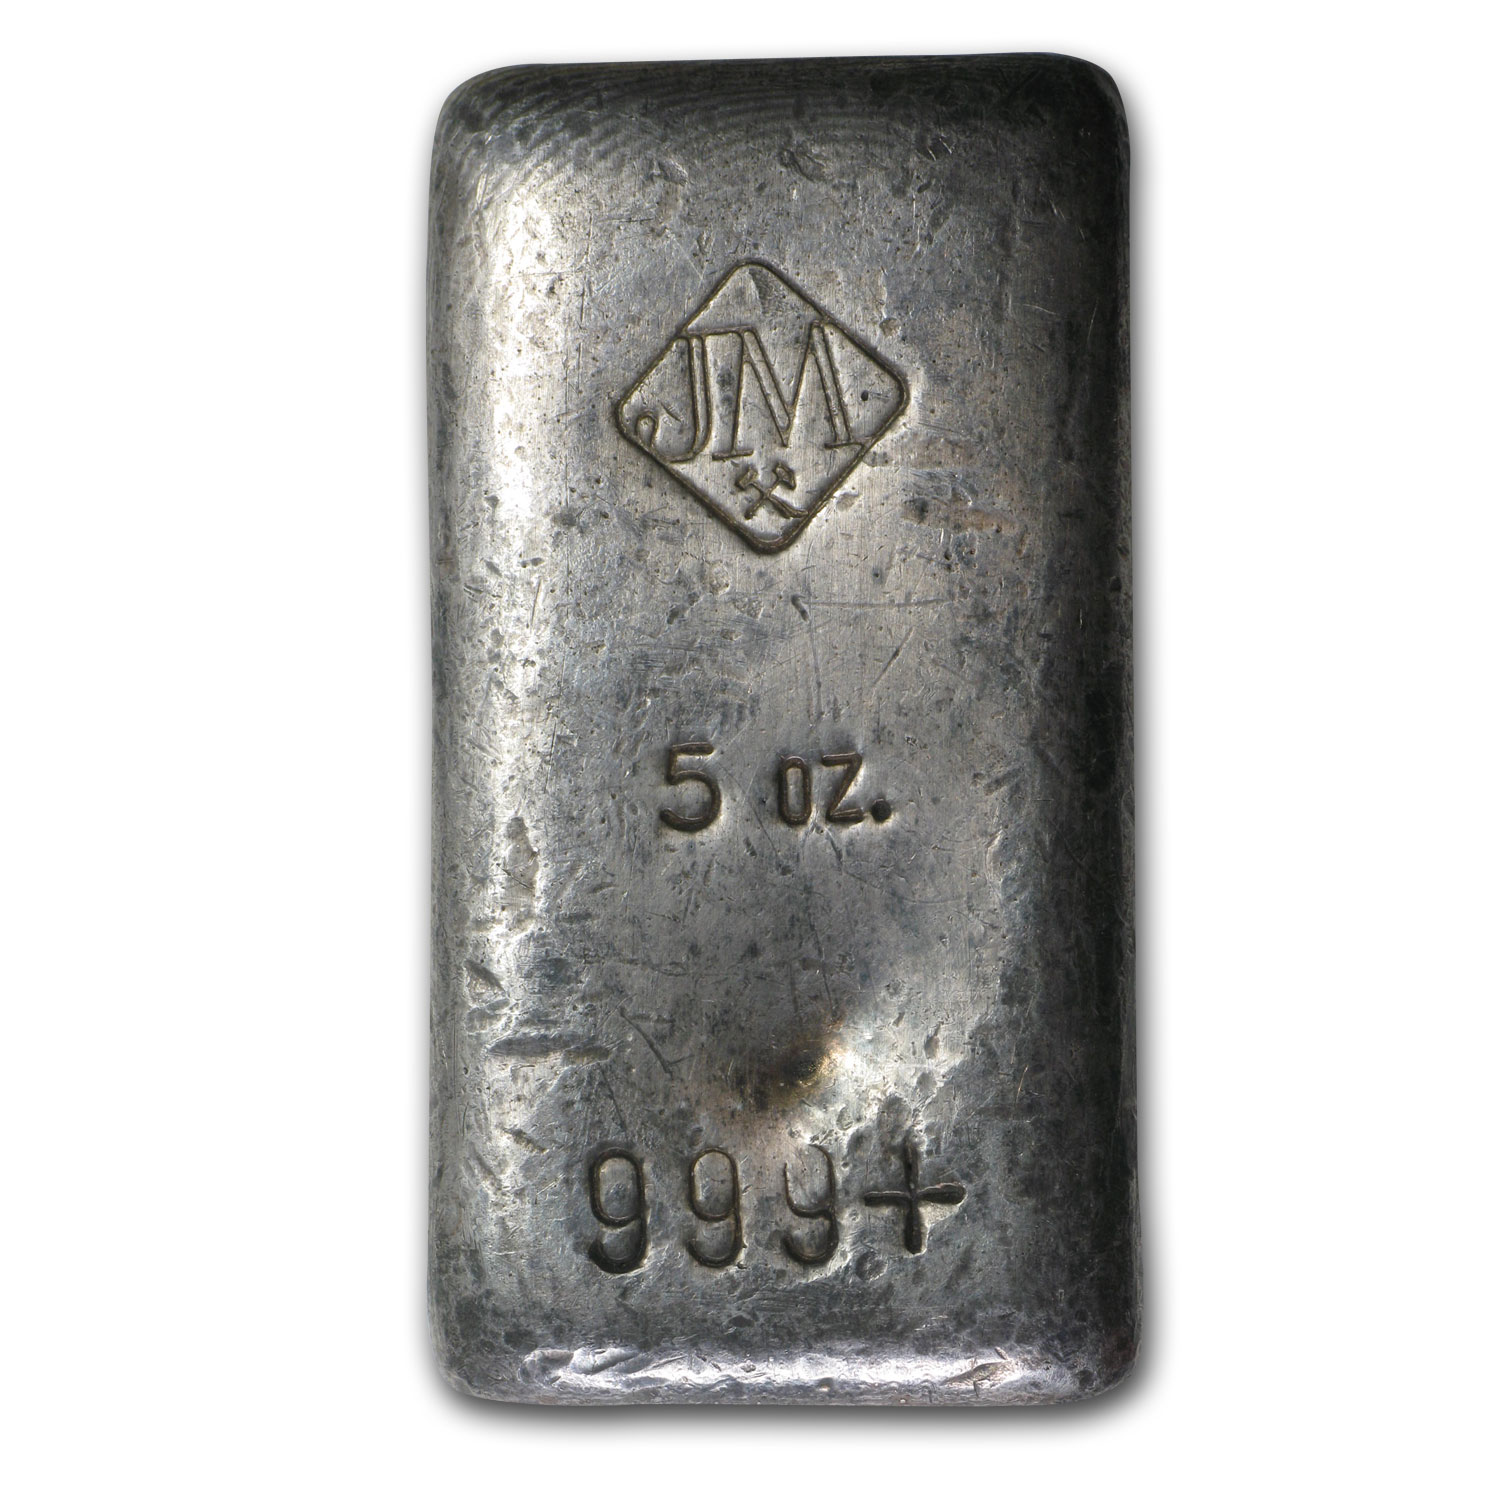 5 oz Silver Bar - Johnson Matthey (Poured/Flat)